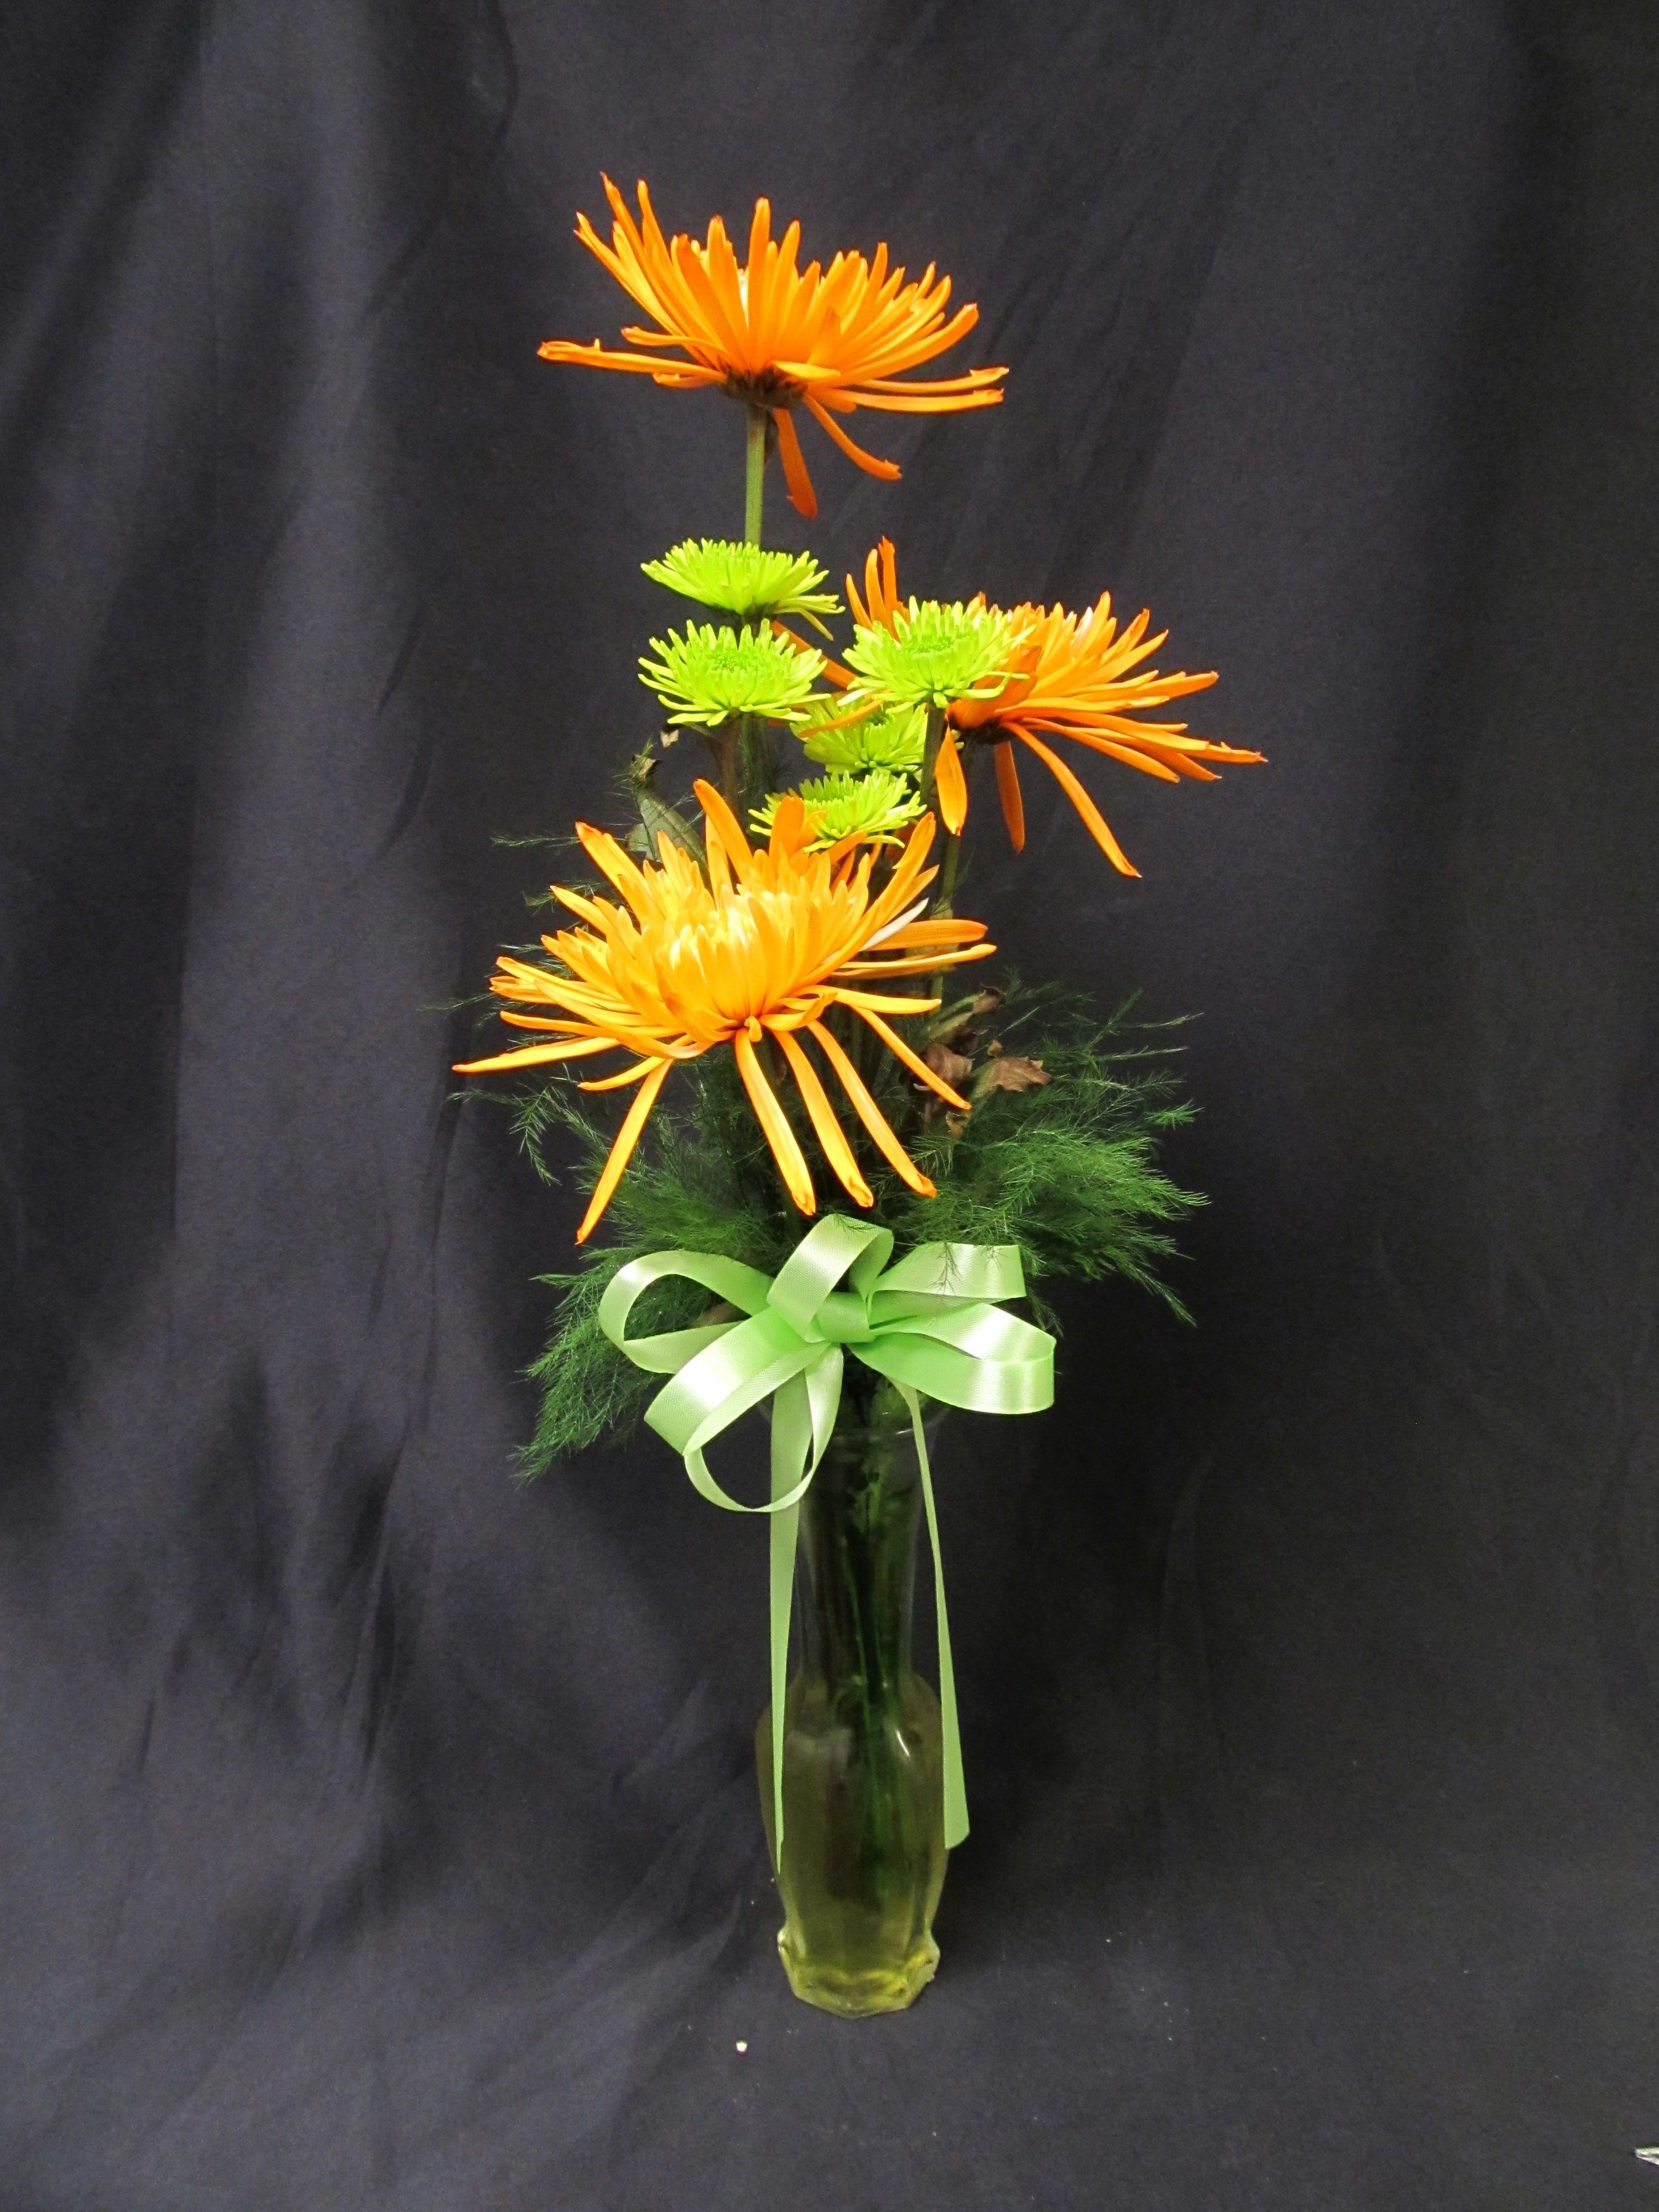 Budvase of spider mums and daisy poms everyday bouquet